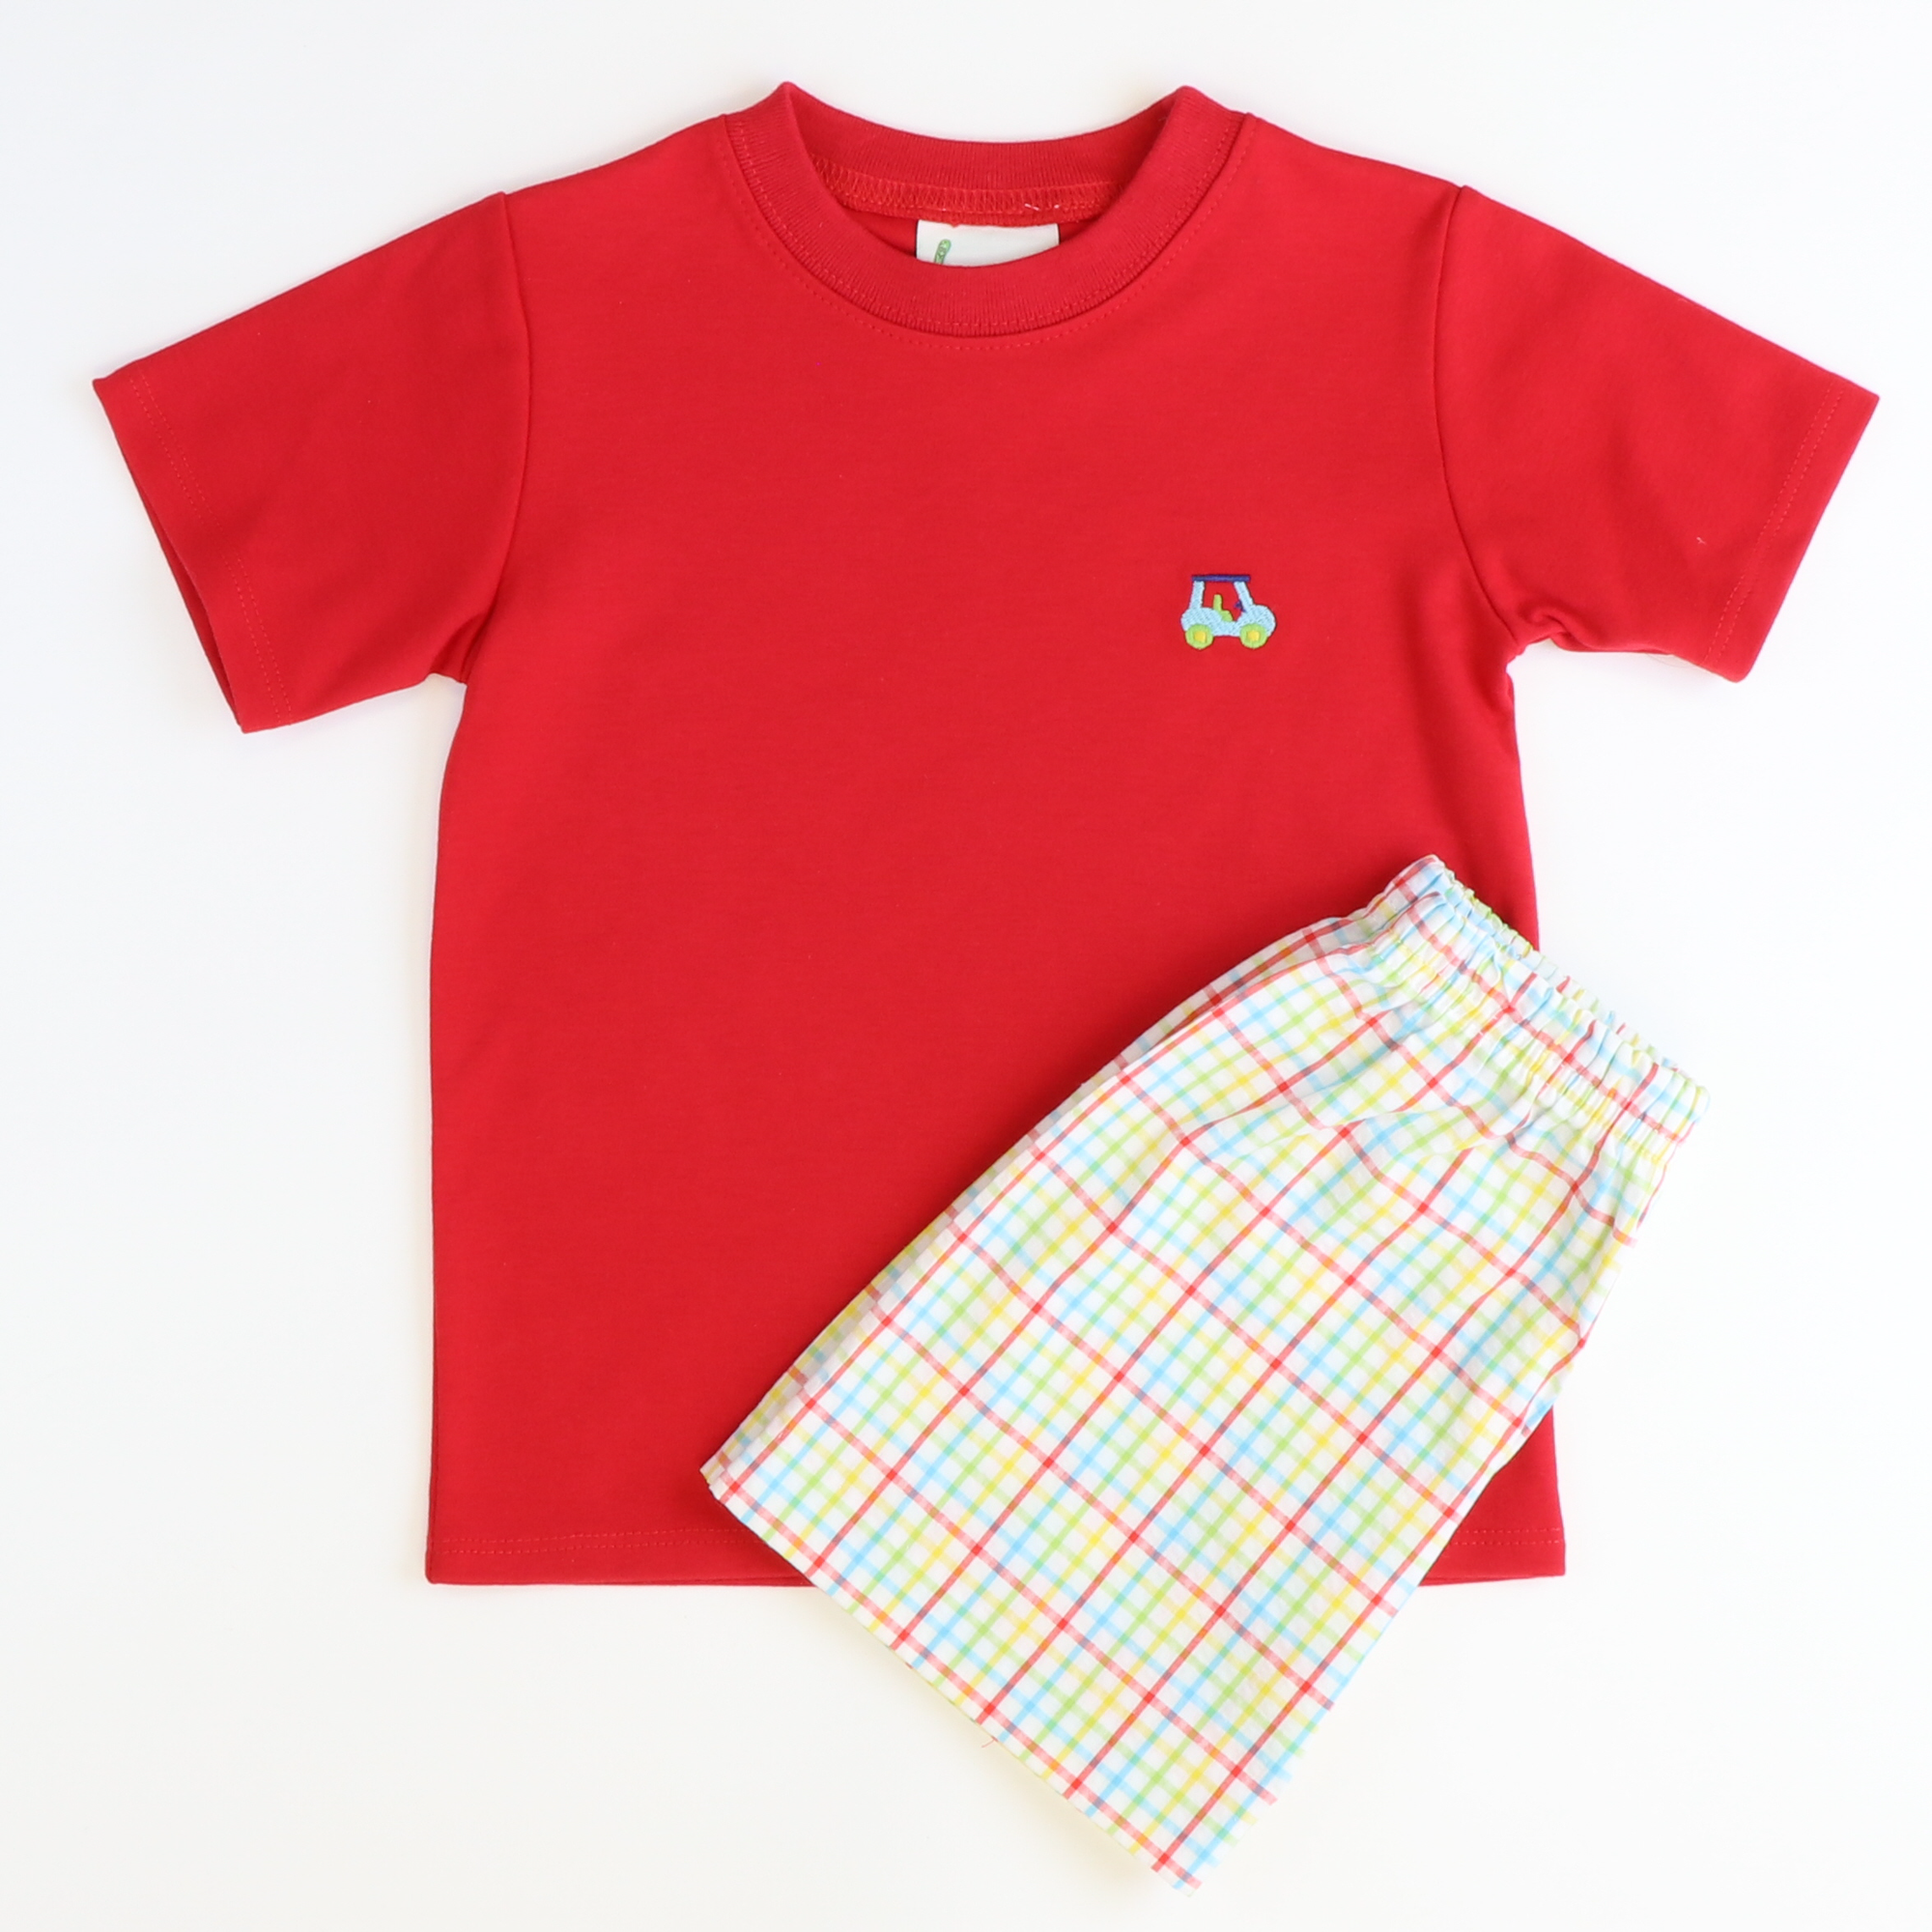 Embroidered Golf T-Shirt & Shorts Set - Red Knit